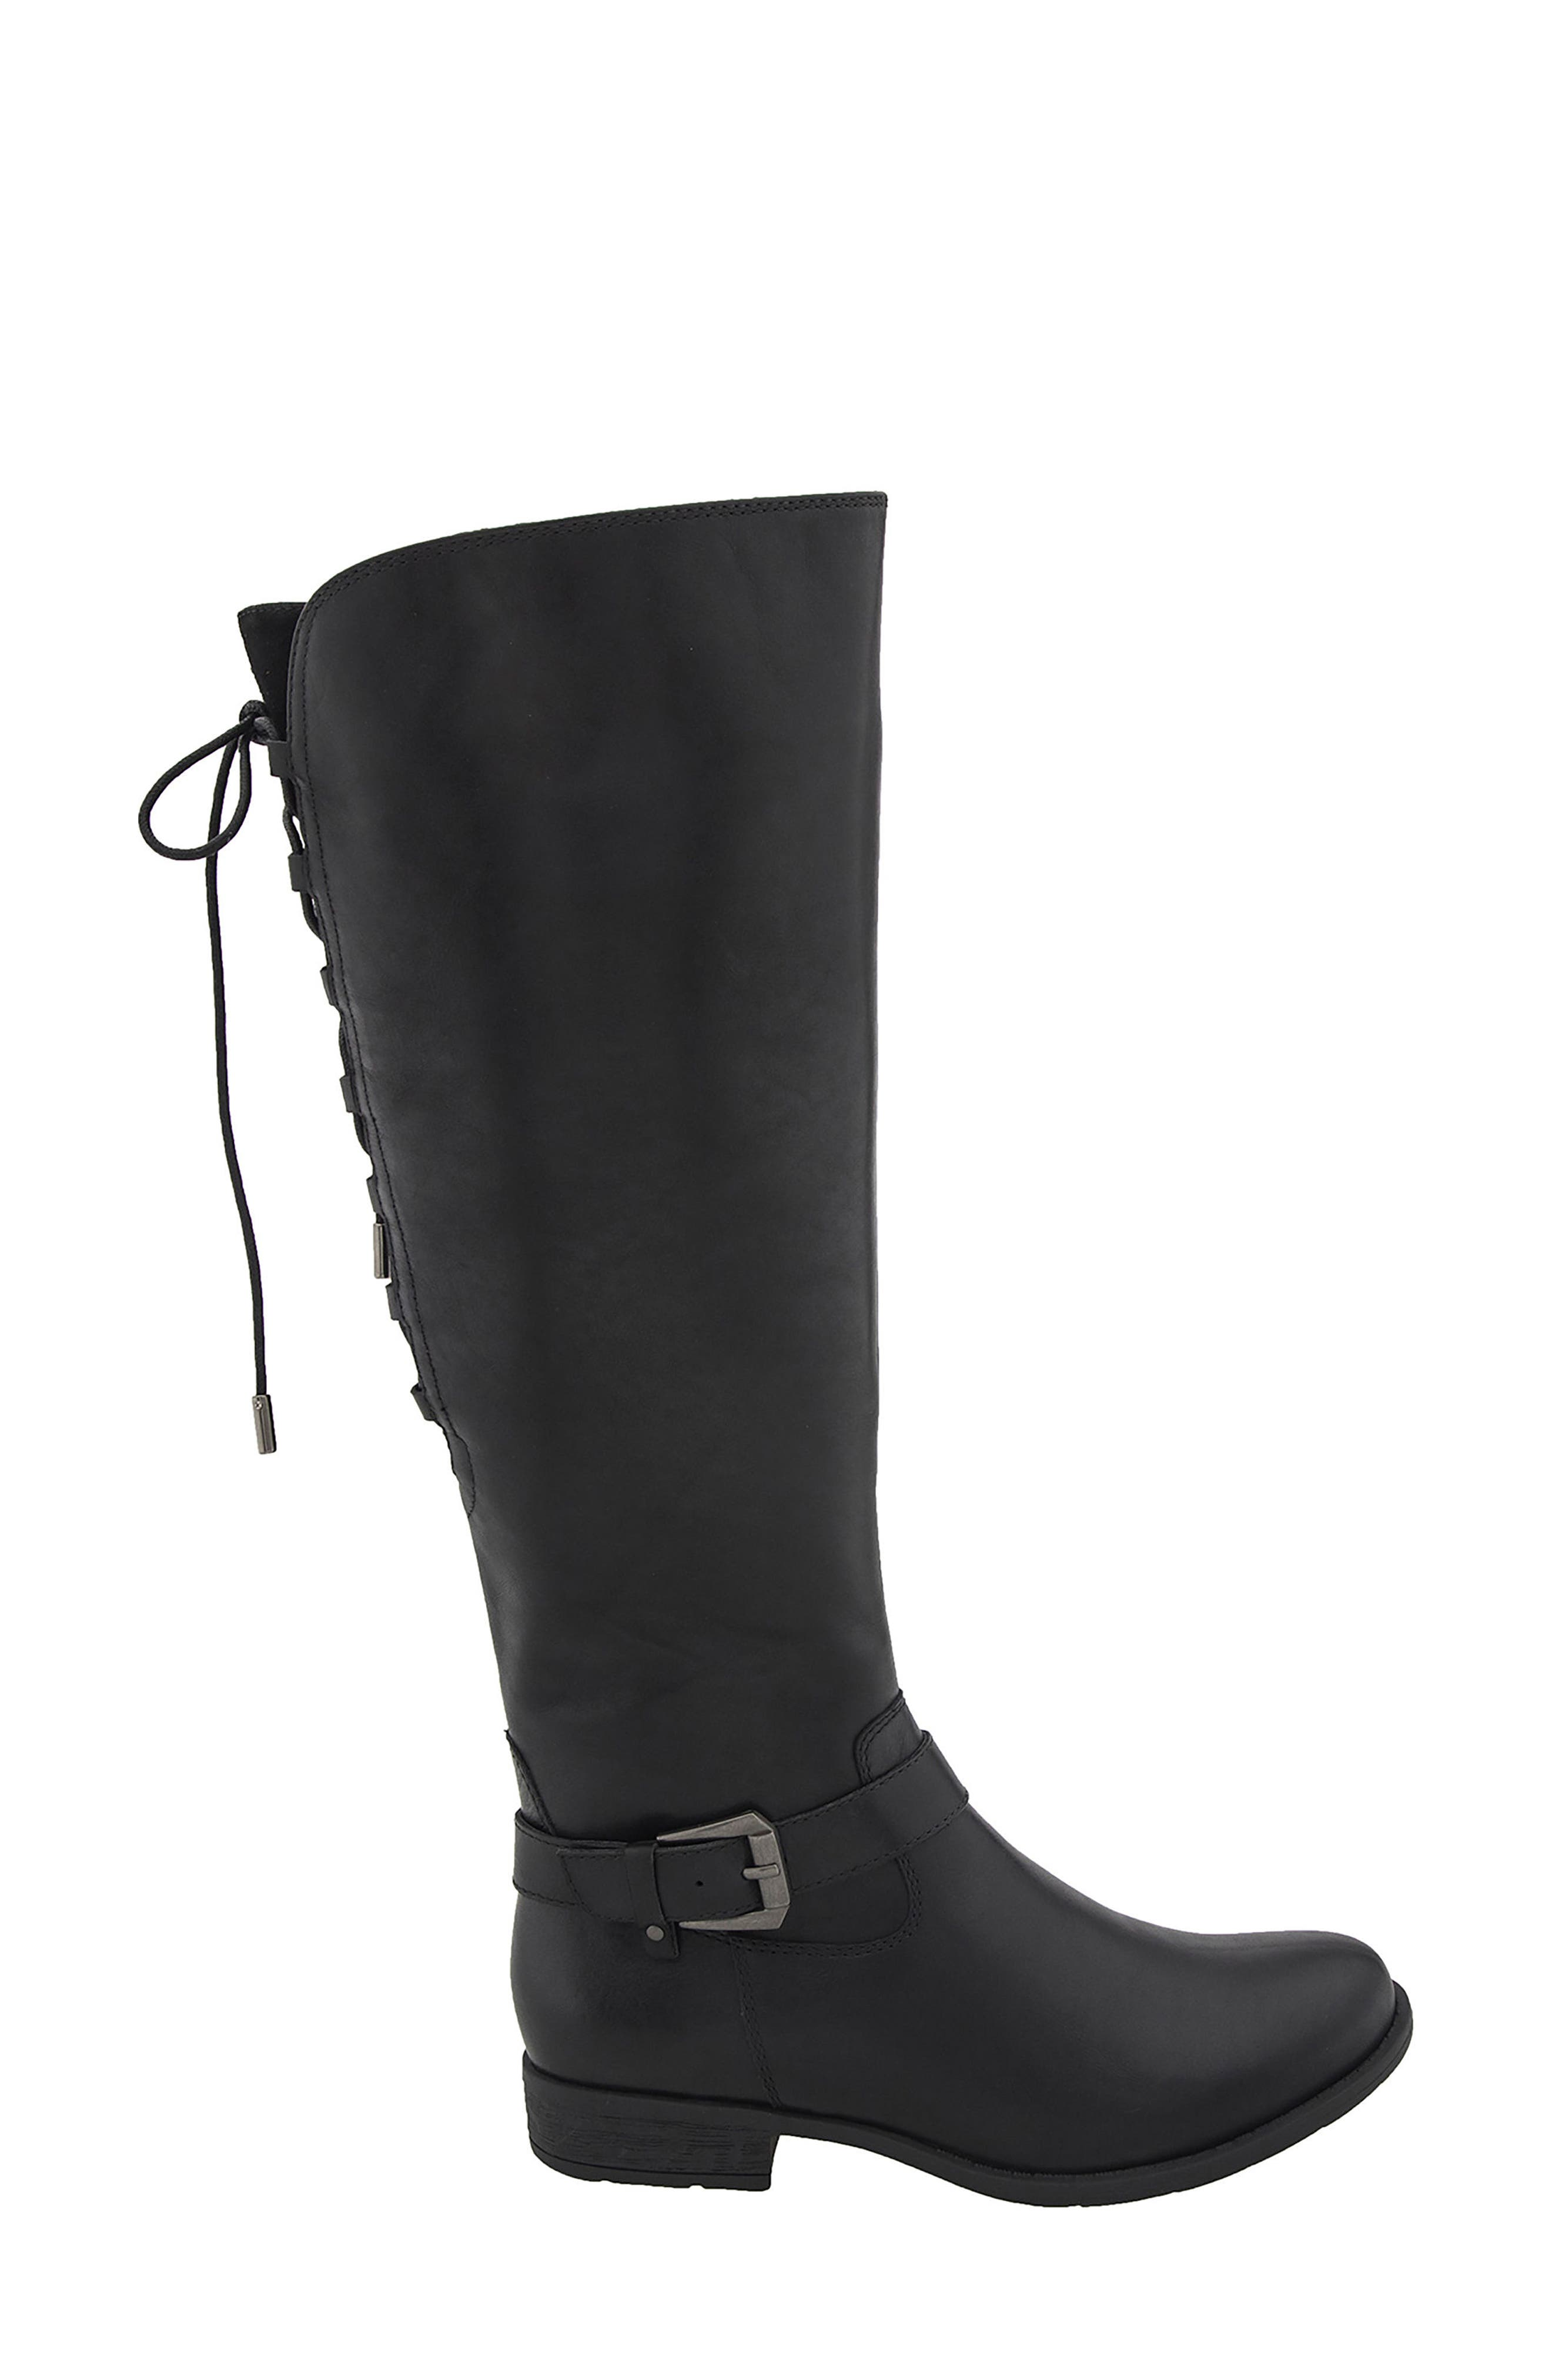 Raleigh Tall Waterproof Boot,                             Alternate thumbnail 3, color,                             015